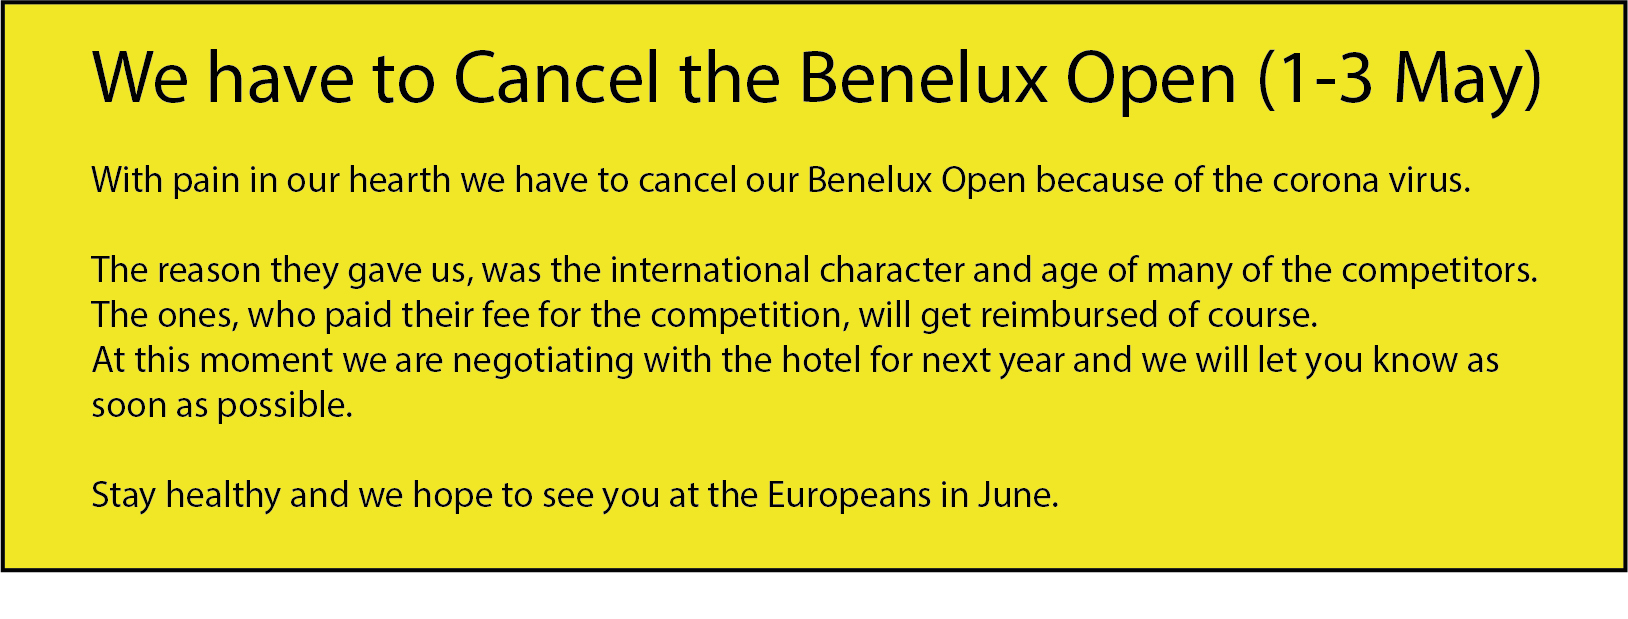 Open Benelux 2020 Canceled